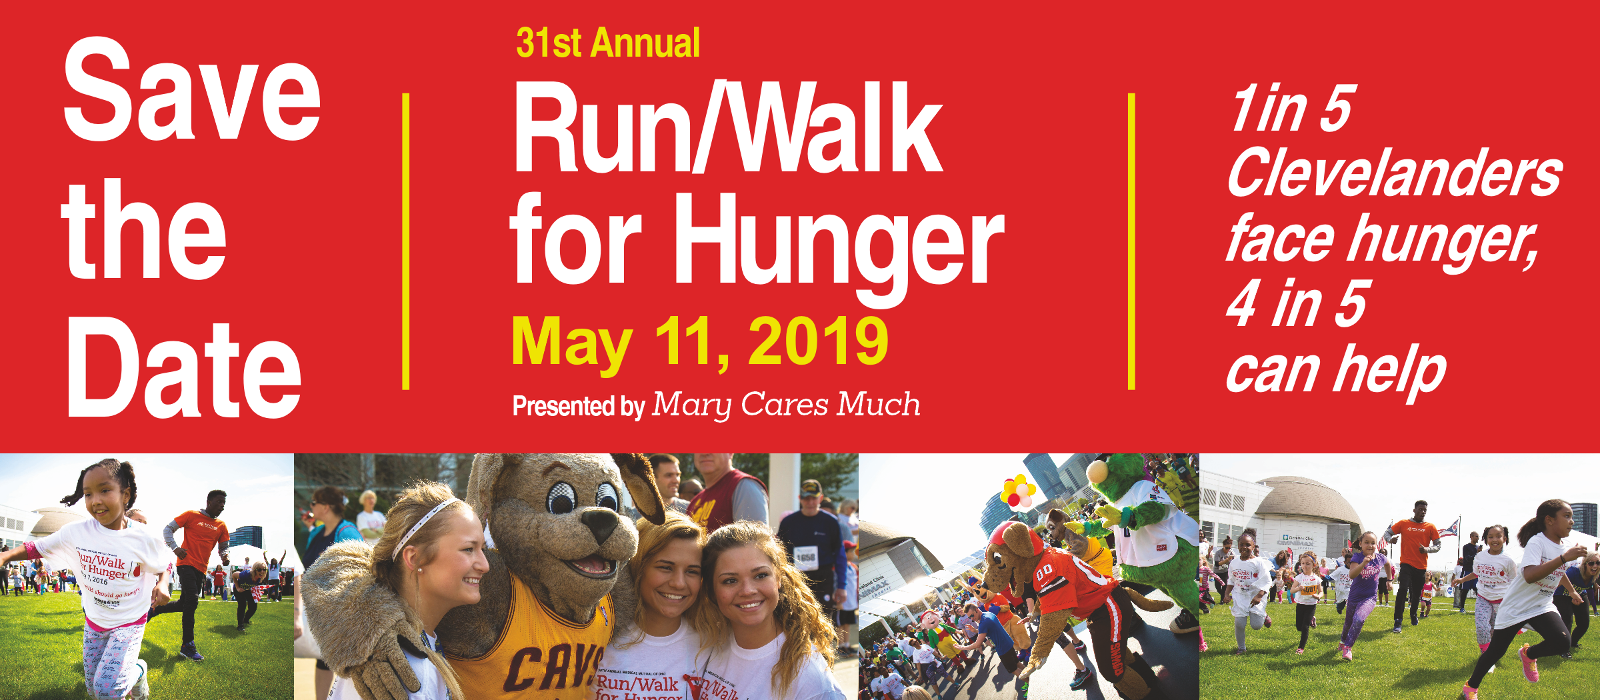 Run/Walk for Hunger - May 11, 2019